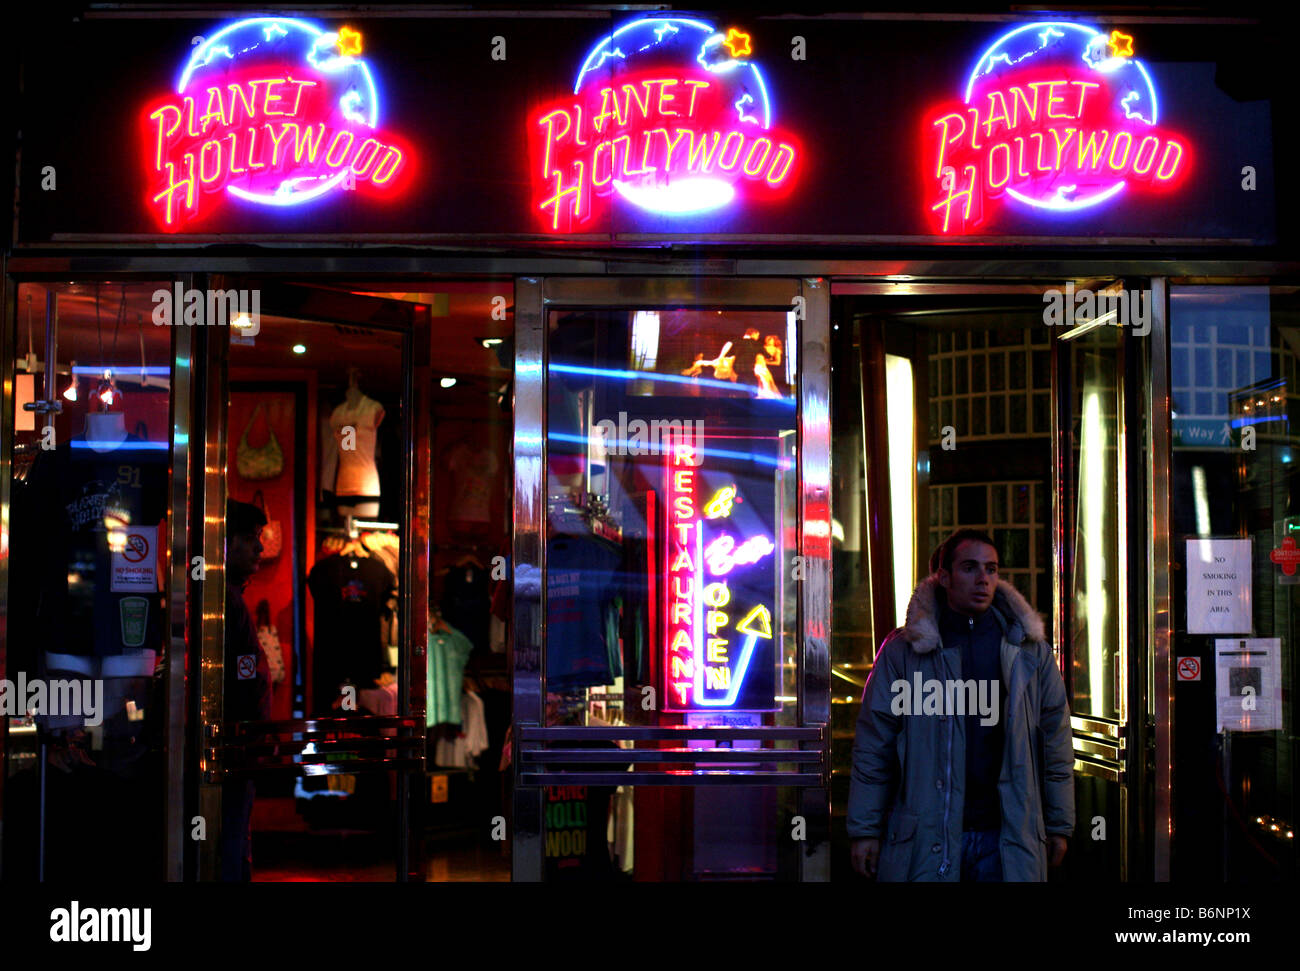 Entrance to Planet Hollywood in Leicester Square, London - Stock Image